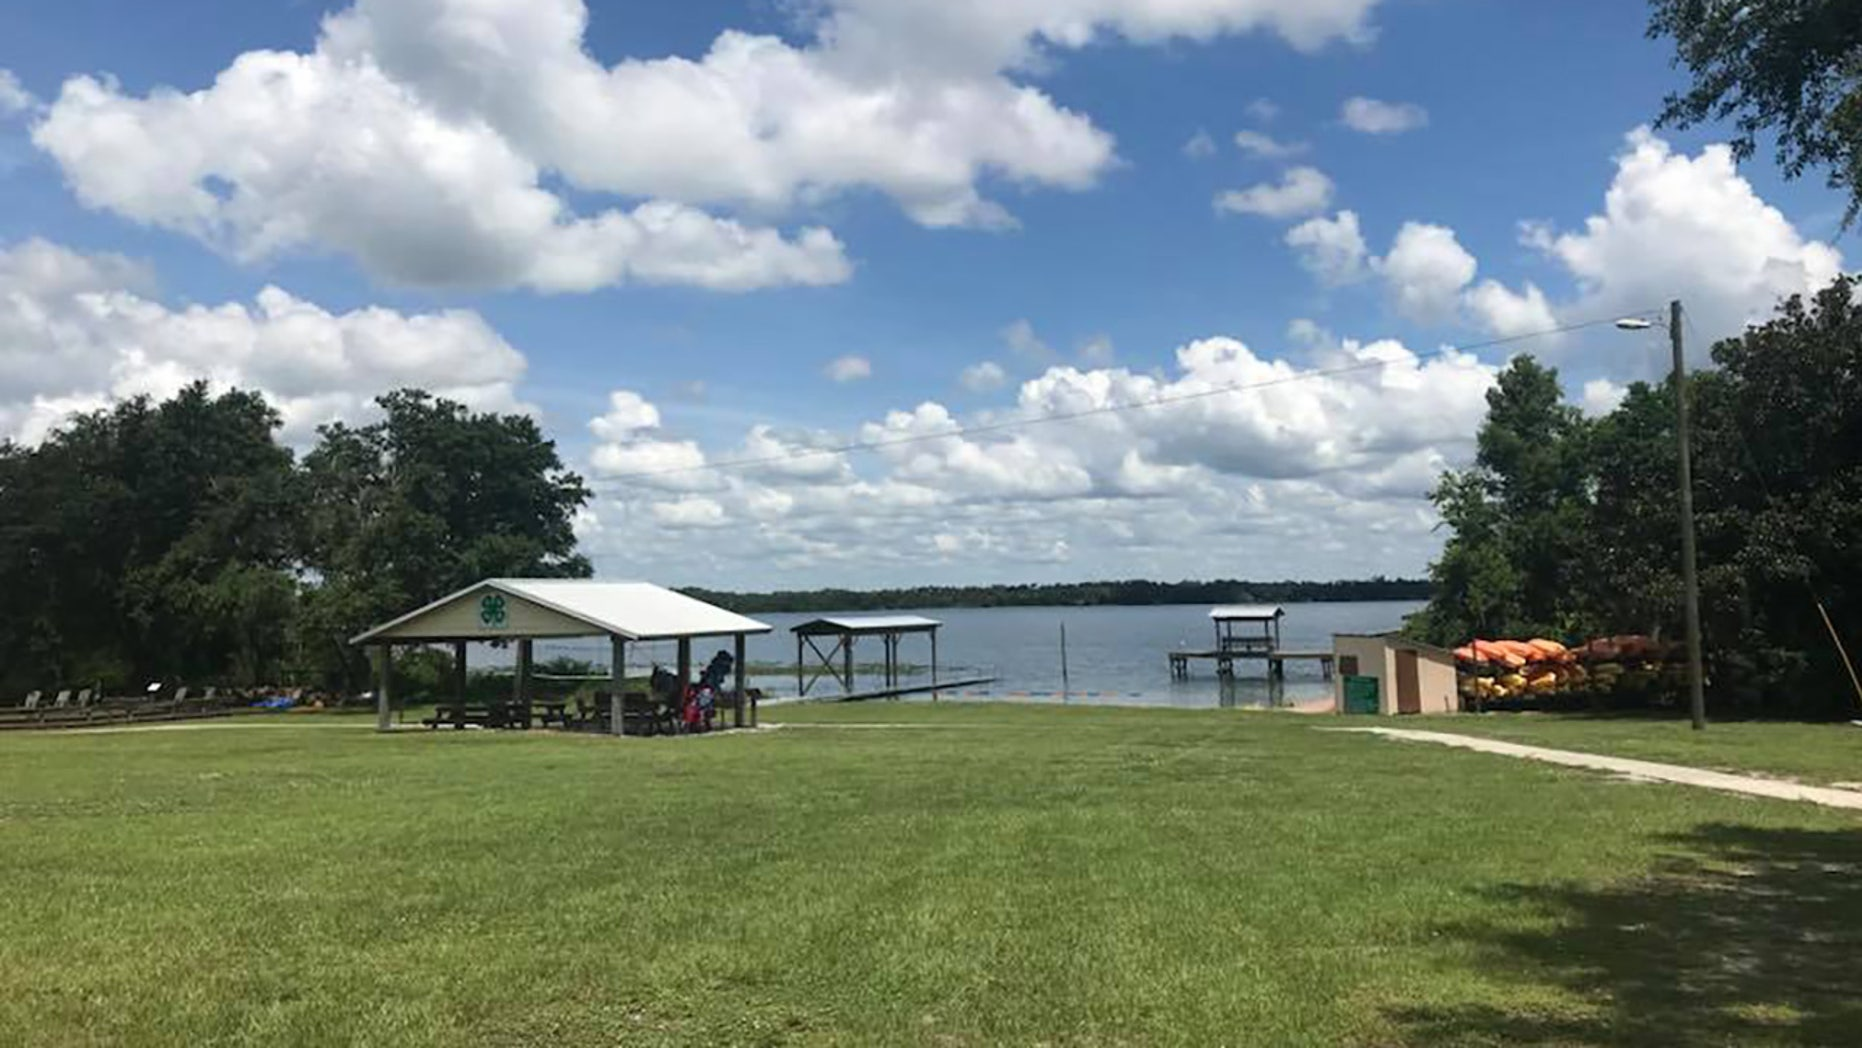 More than two dozen children suddenly fell ill Thursday at the 4-H Camp Cloverleaf in Lake Placid, Fla.